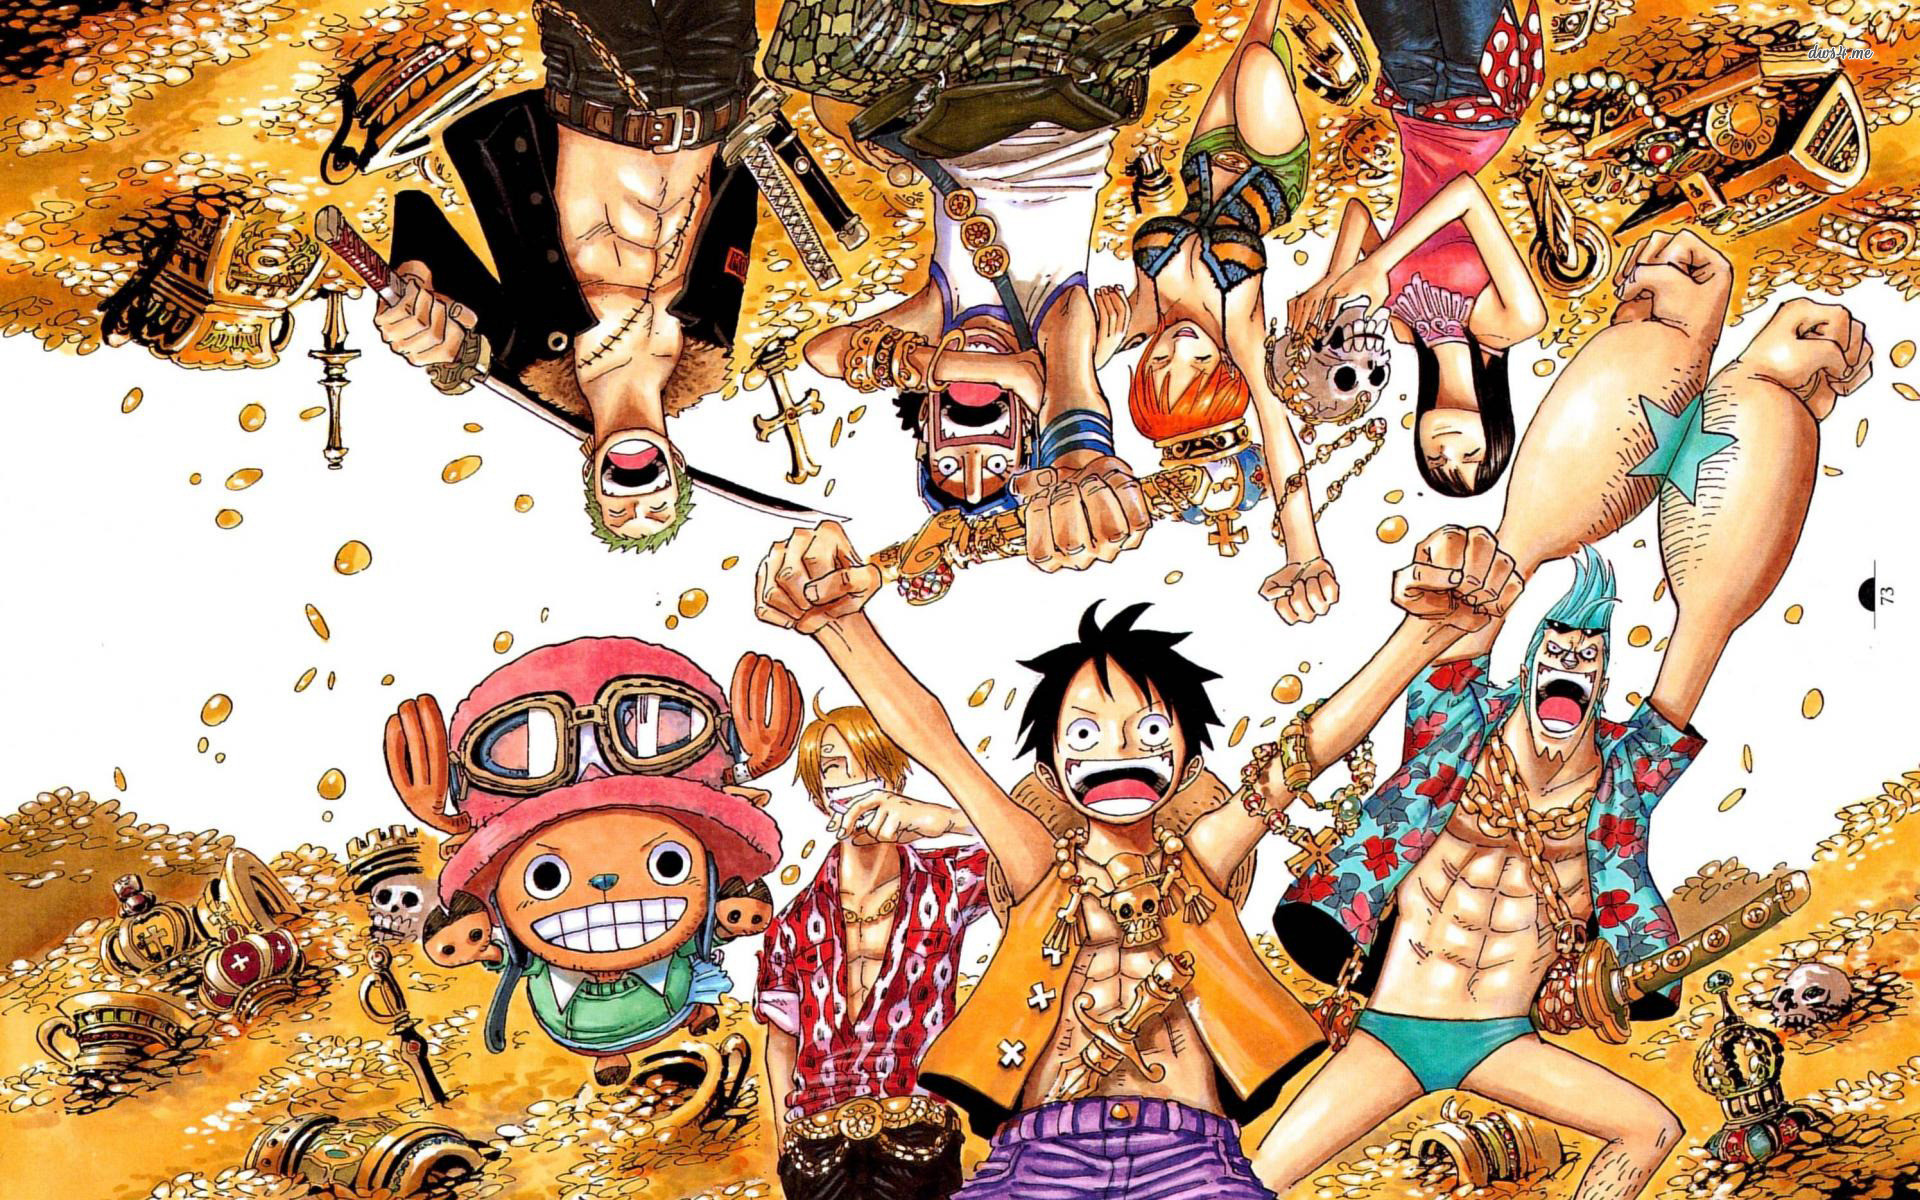 Res: 1920x1200, Anime One Piece Wallpaper Wallpaper